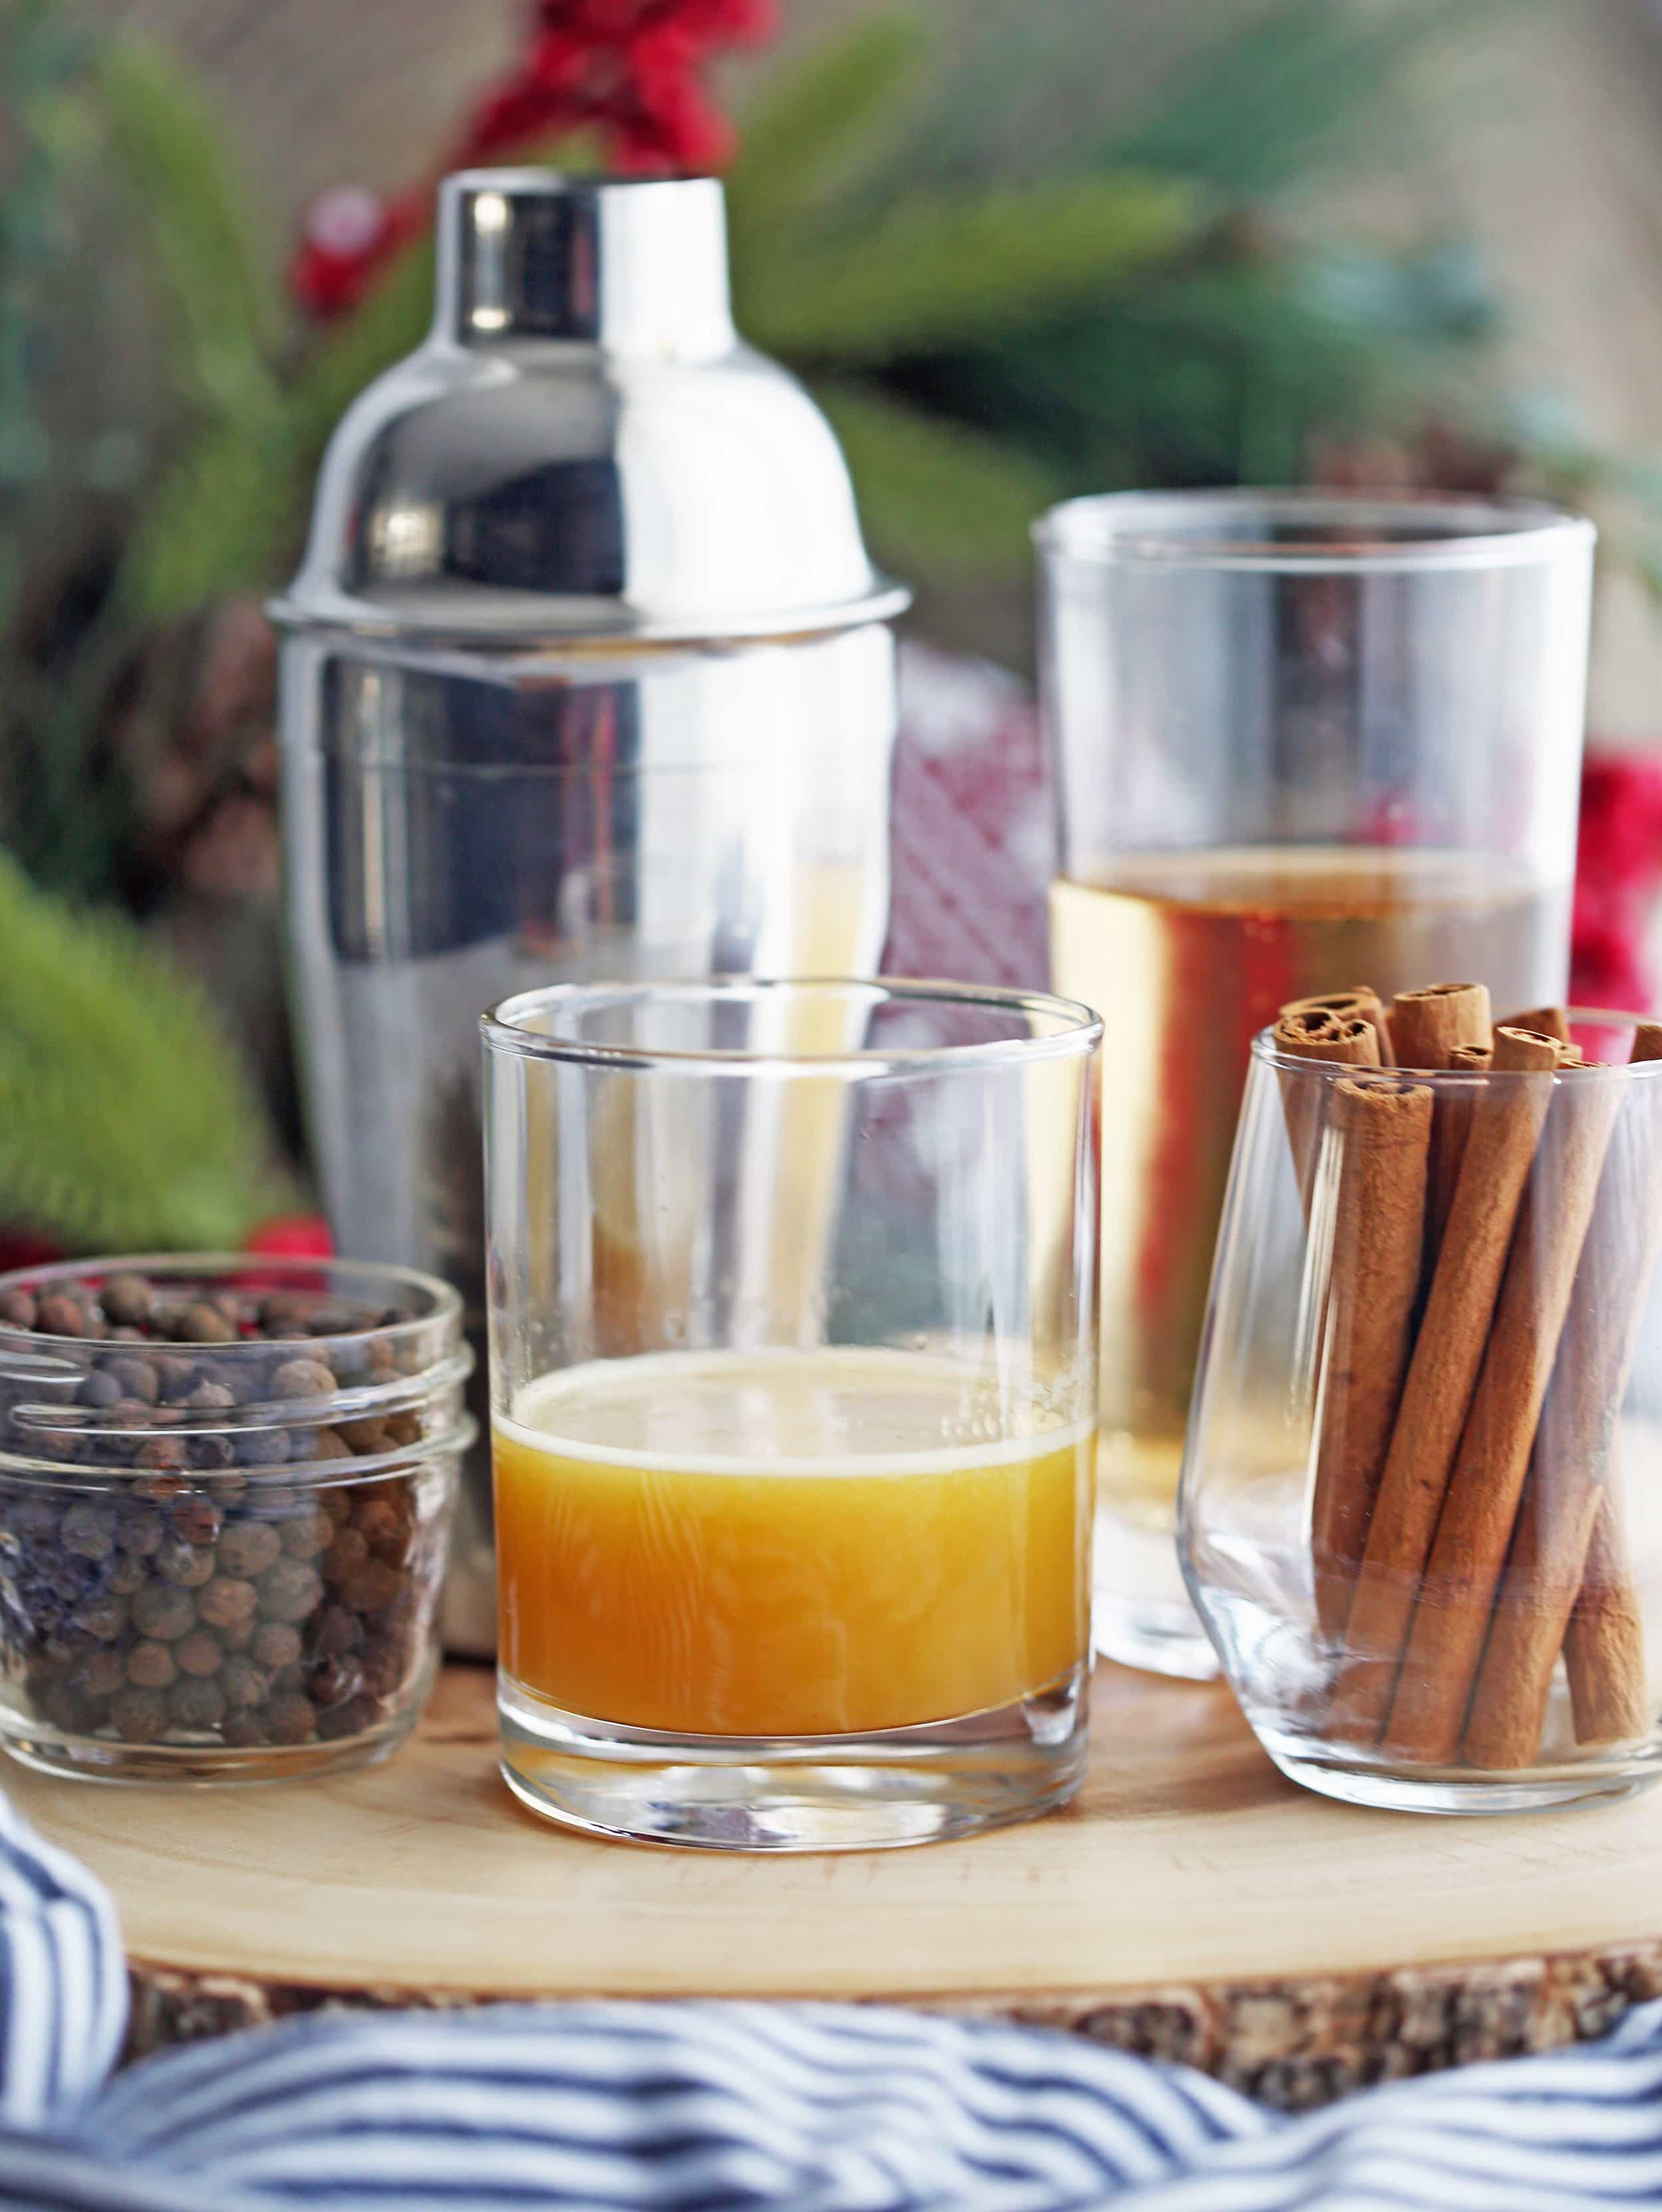 A mixture of brandy, orange juice, and spices in a double-old fashioned glass.